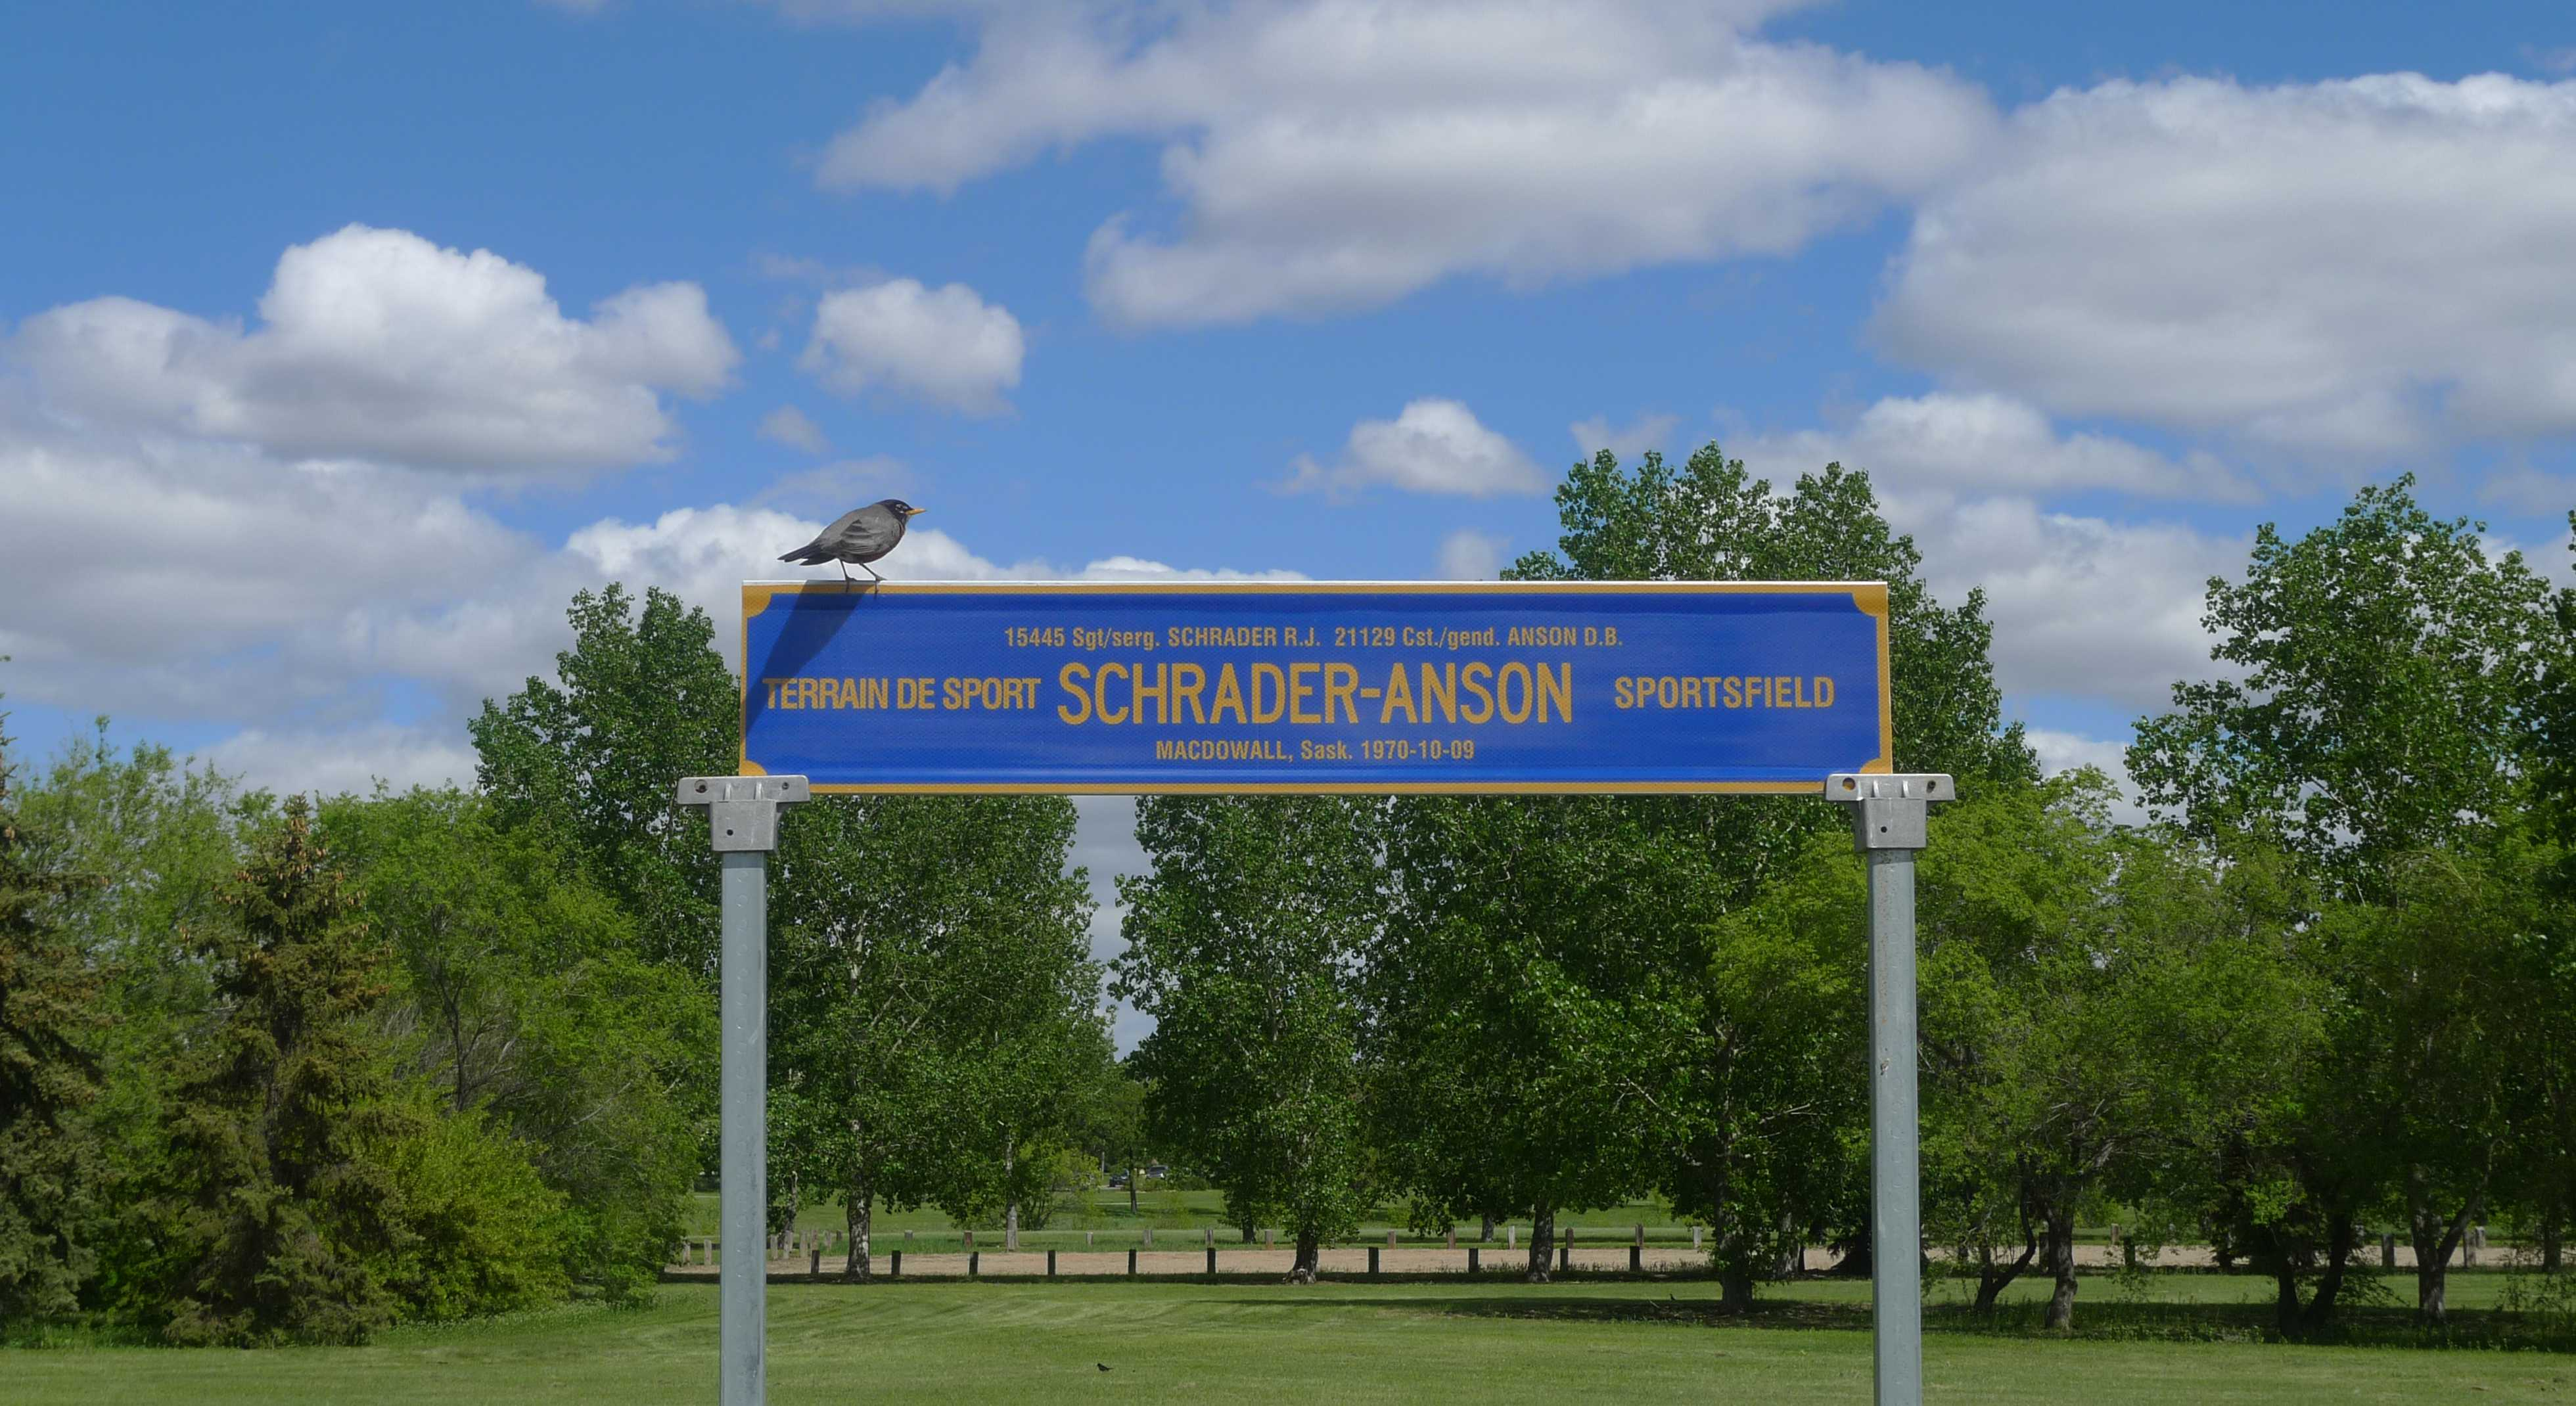 Schrader-Anson Sports Field at Depot– © Her Majesty the Queen in Right of Canada as represented by the Royal Canadian Mounted Police